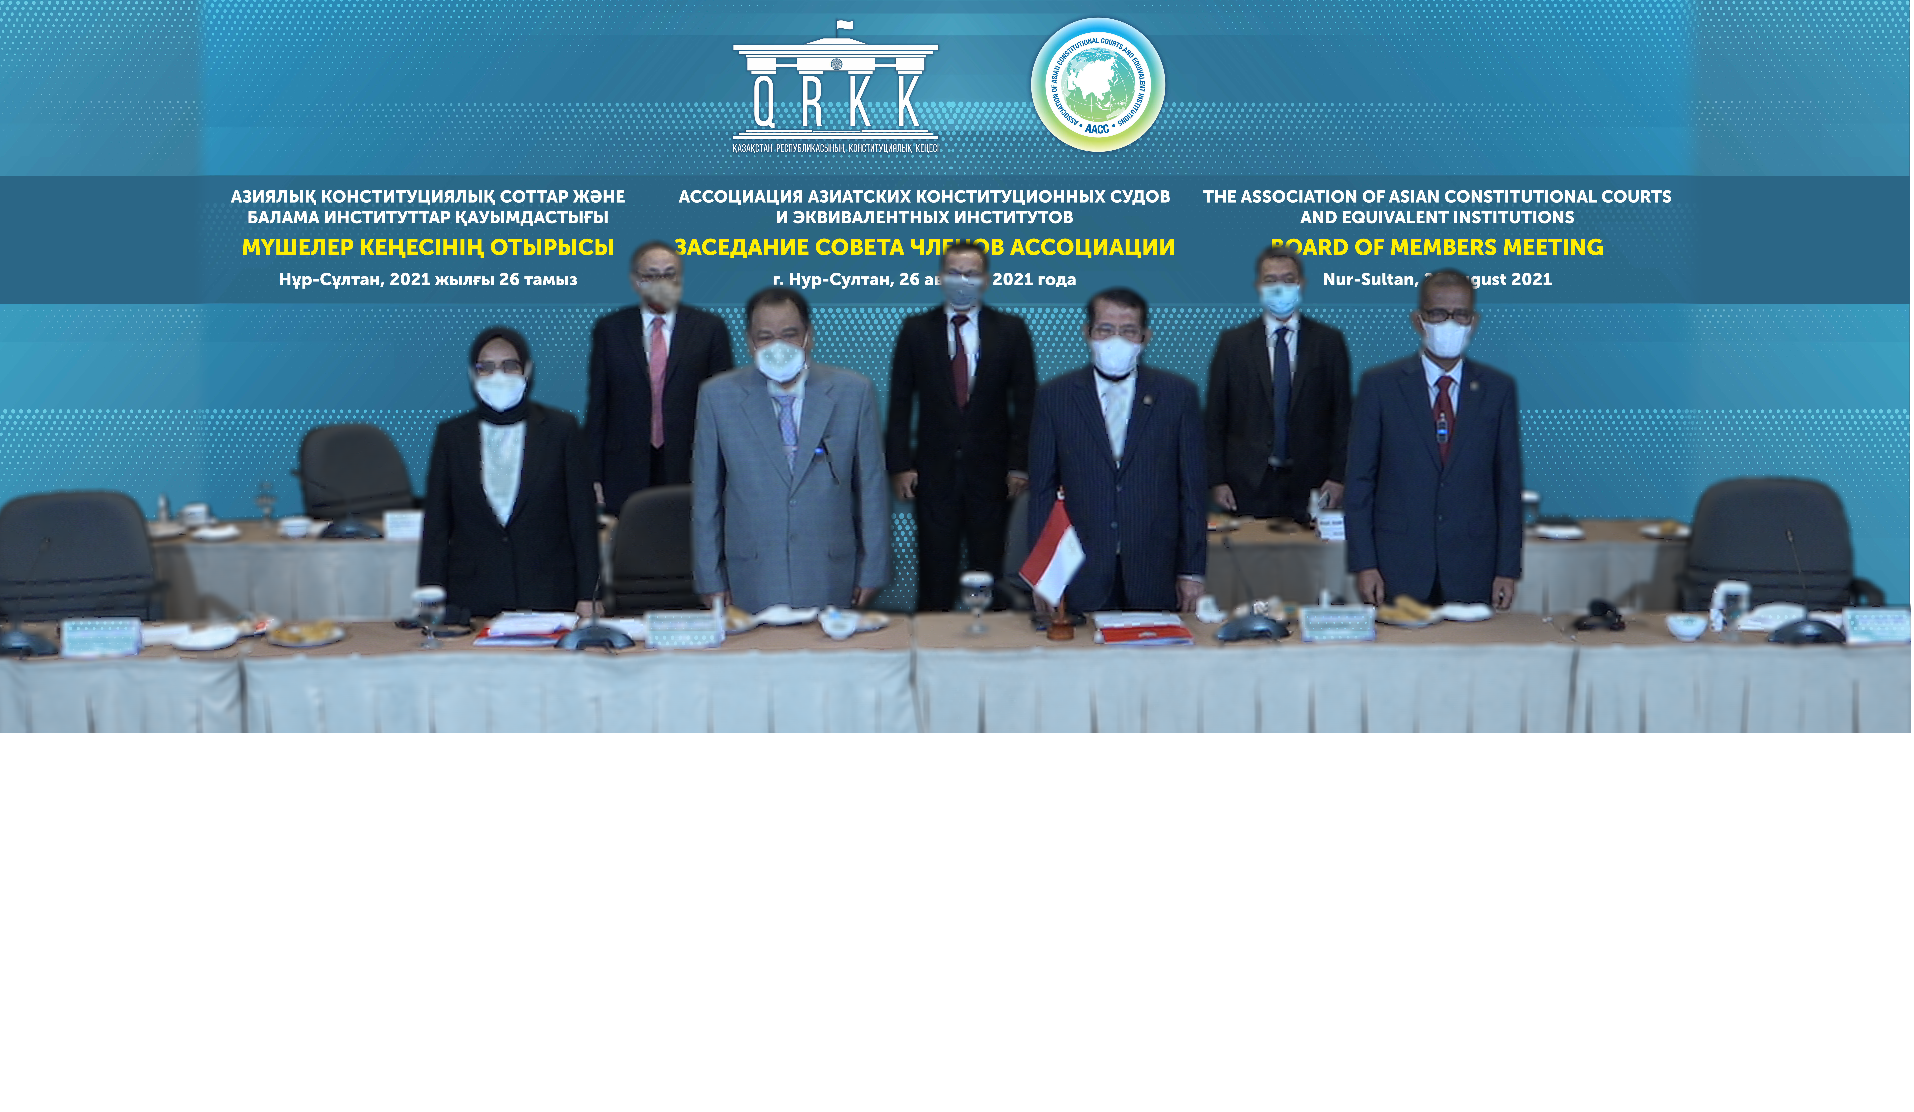 BoMM:  AACC's Participation in 5th Congress of WCCJ